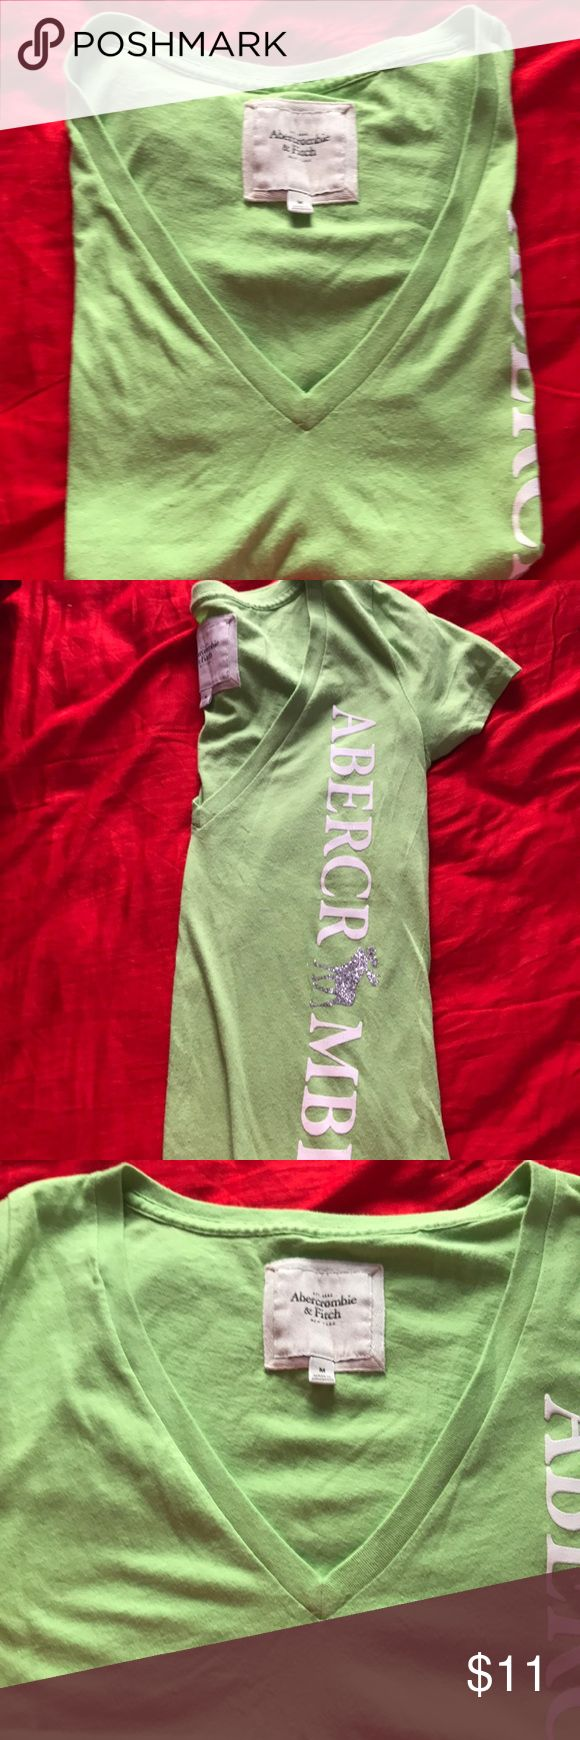 Cute Abercrombie T-shirt Nice greeen T-shirt in great shape Abercrombie & Fitch Tops Tees - Short Sleeve